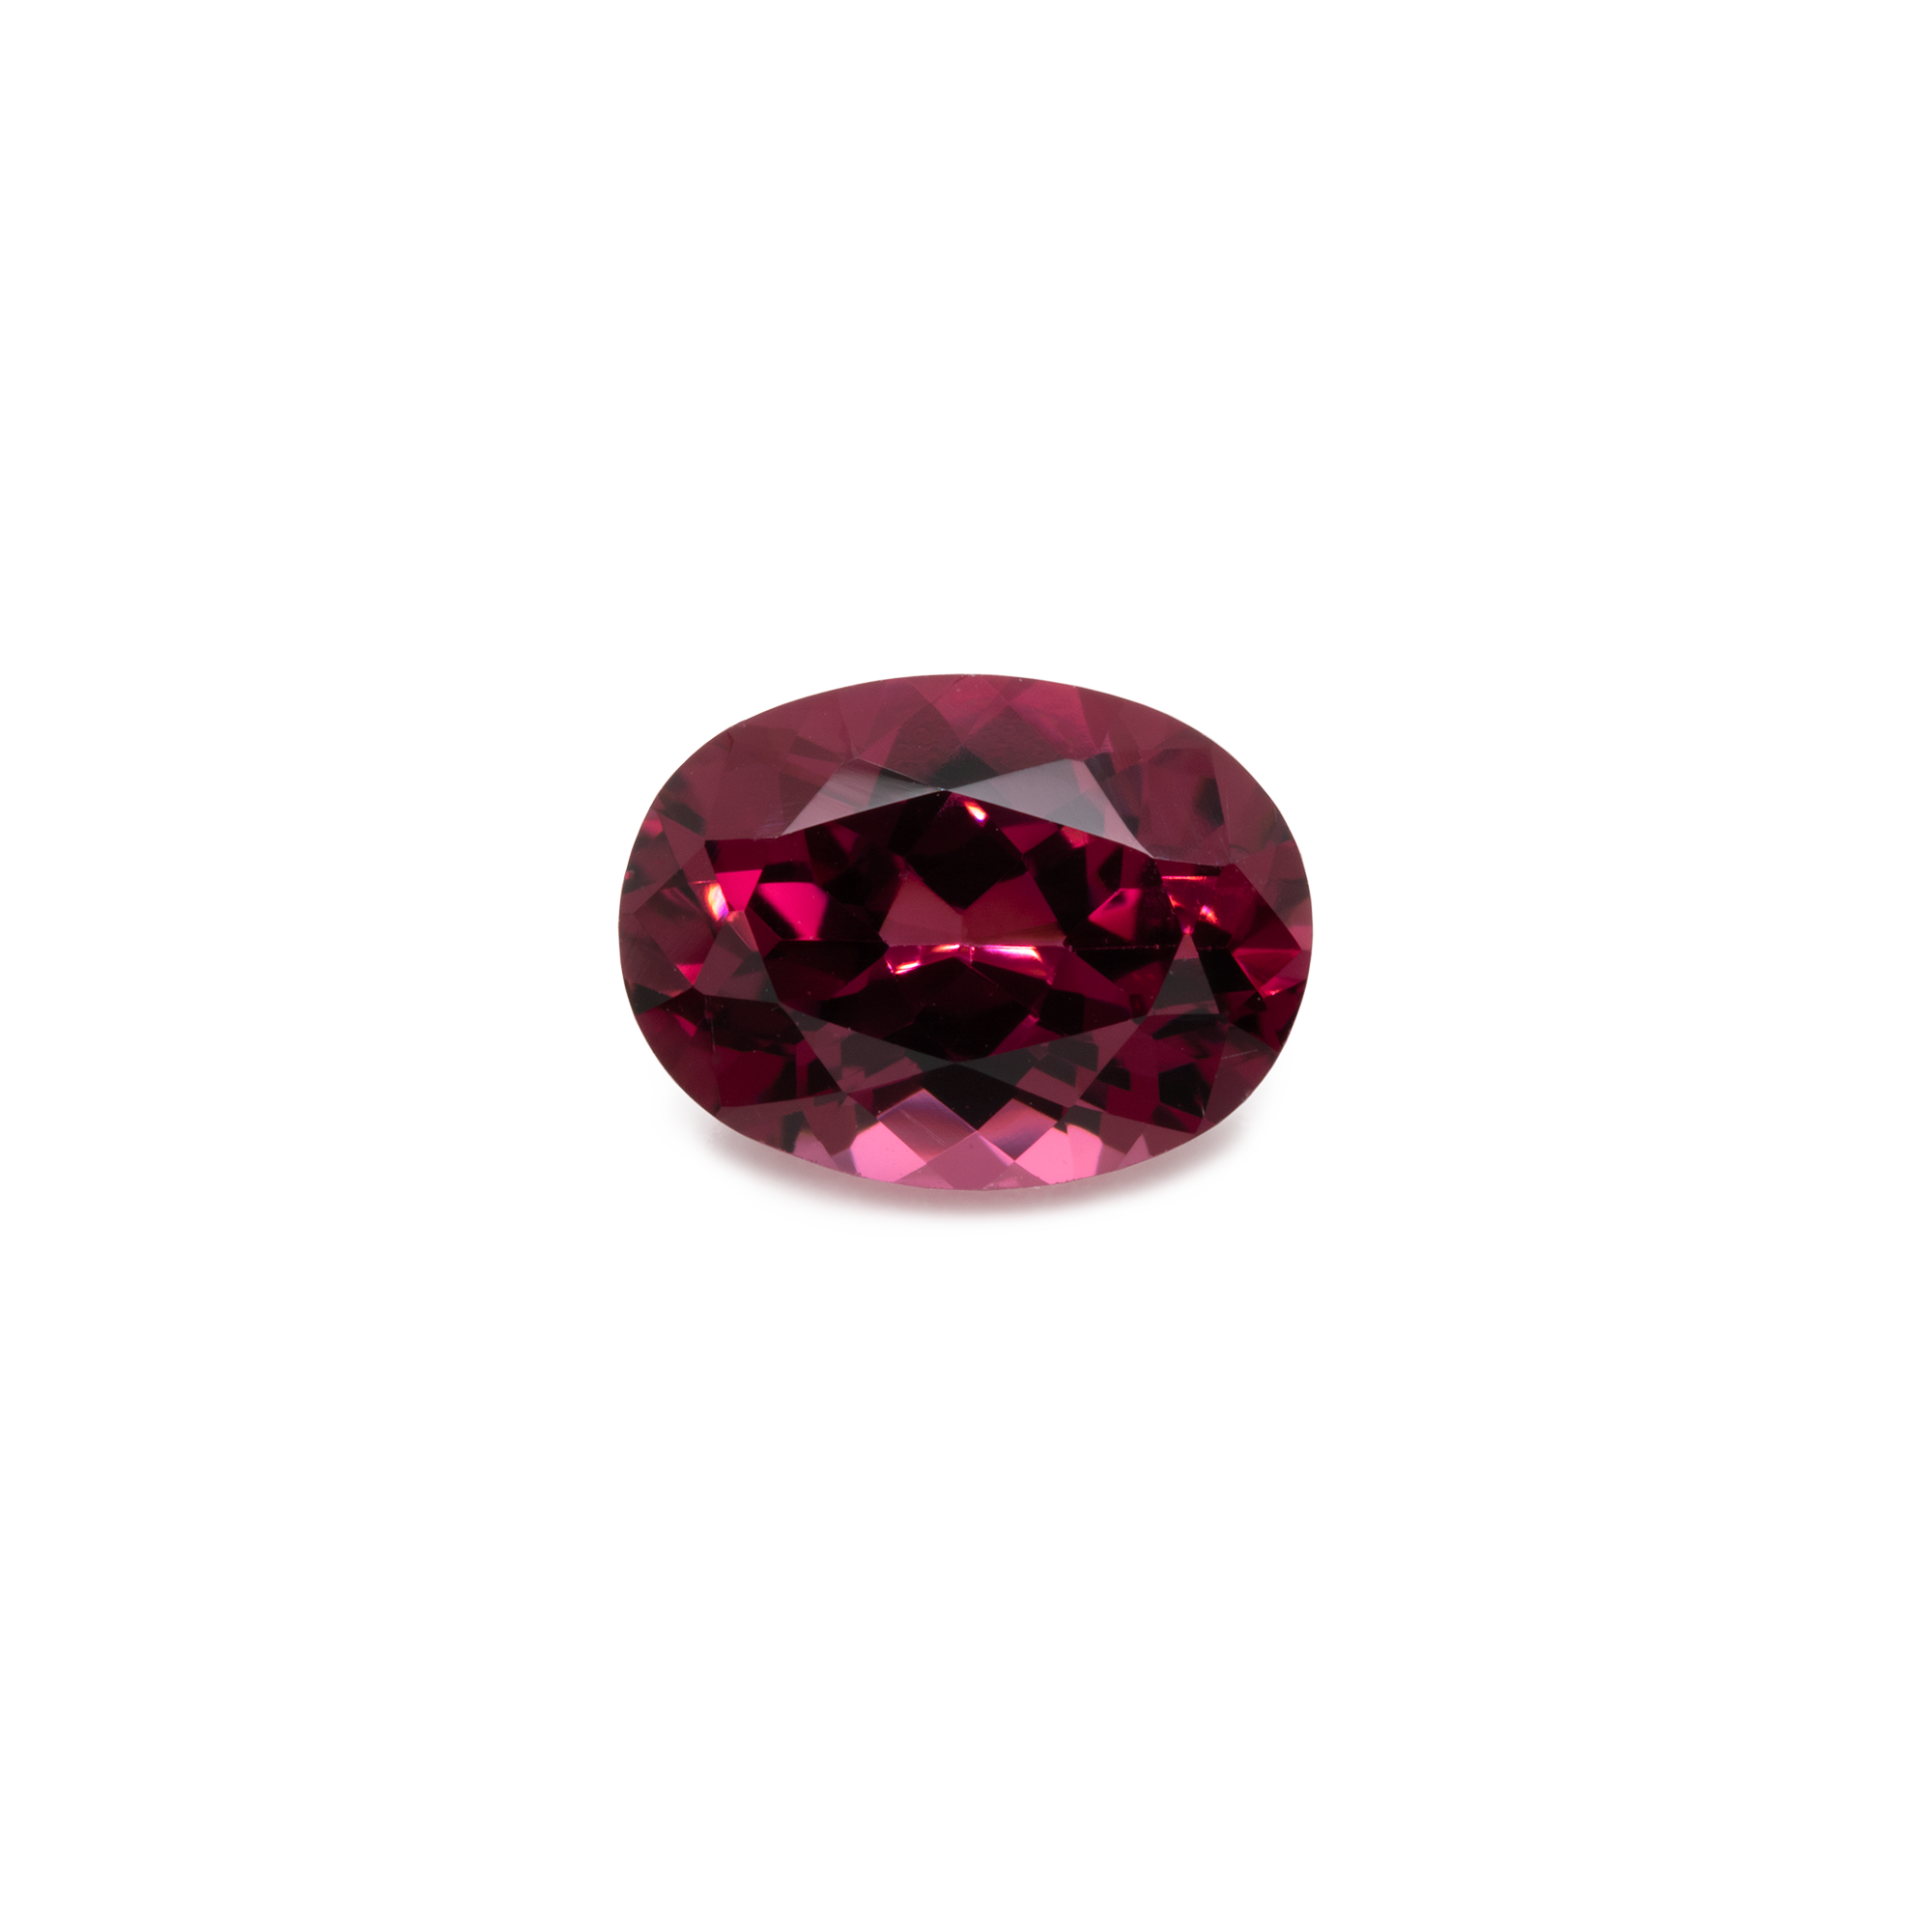 Rhodolith - rot, oval, 8x6 mm, 1,52-1,57 cts, Nr. RD60001